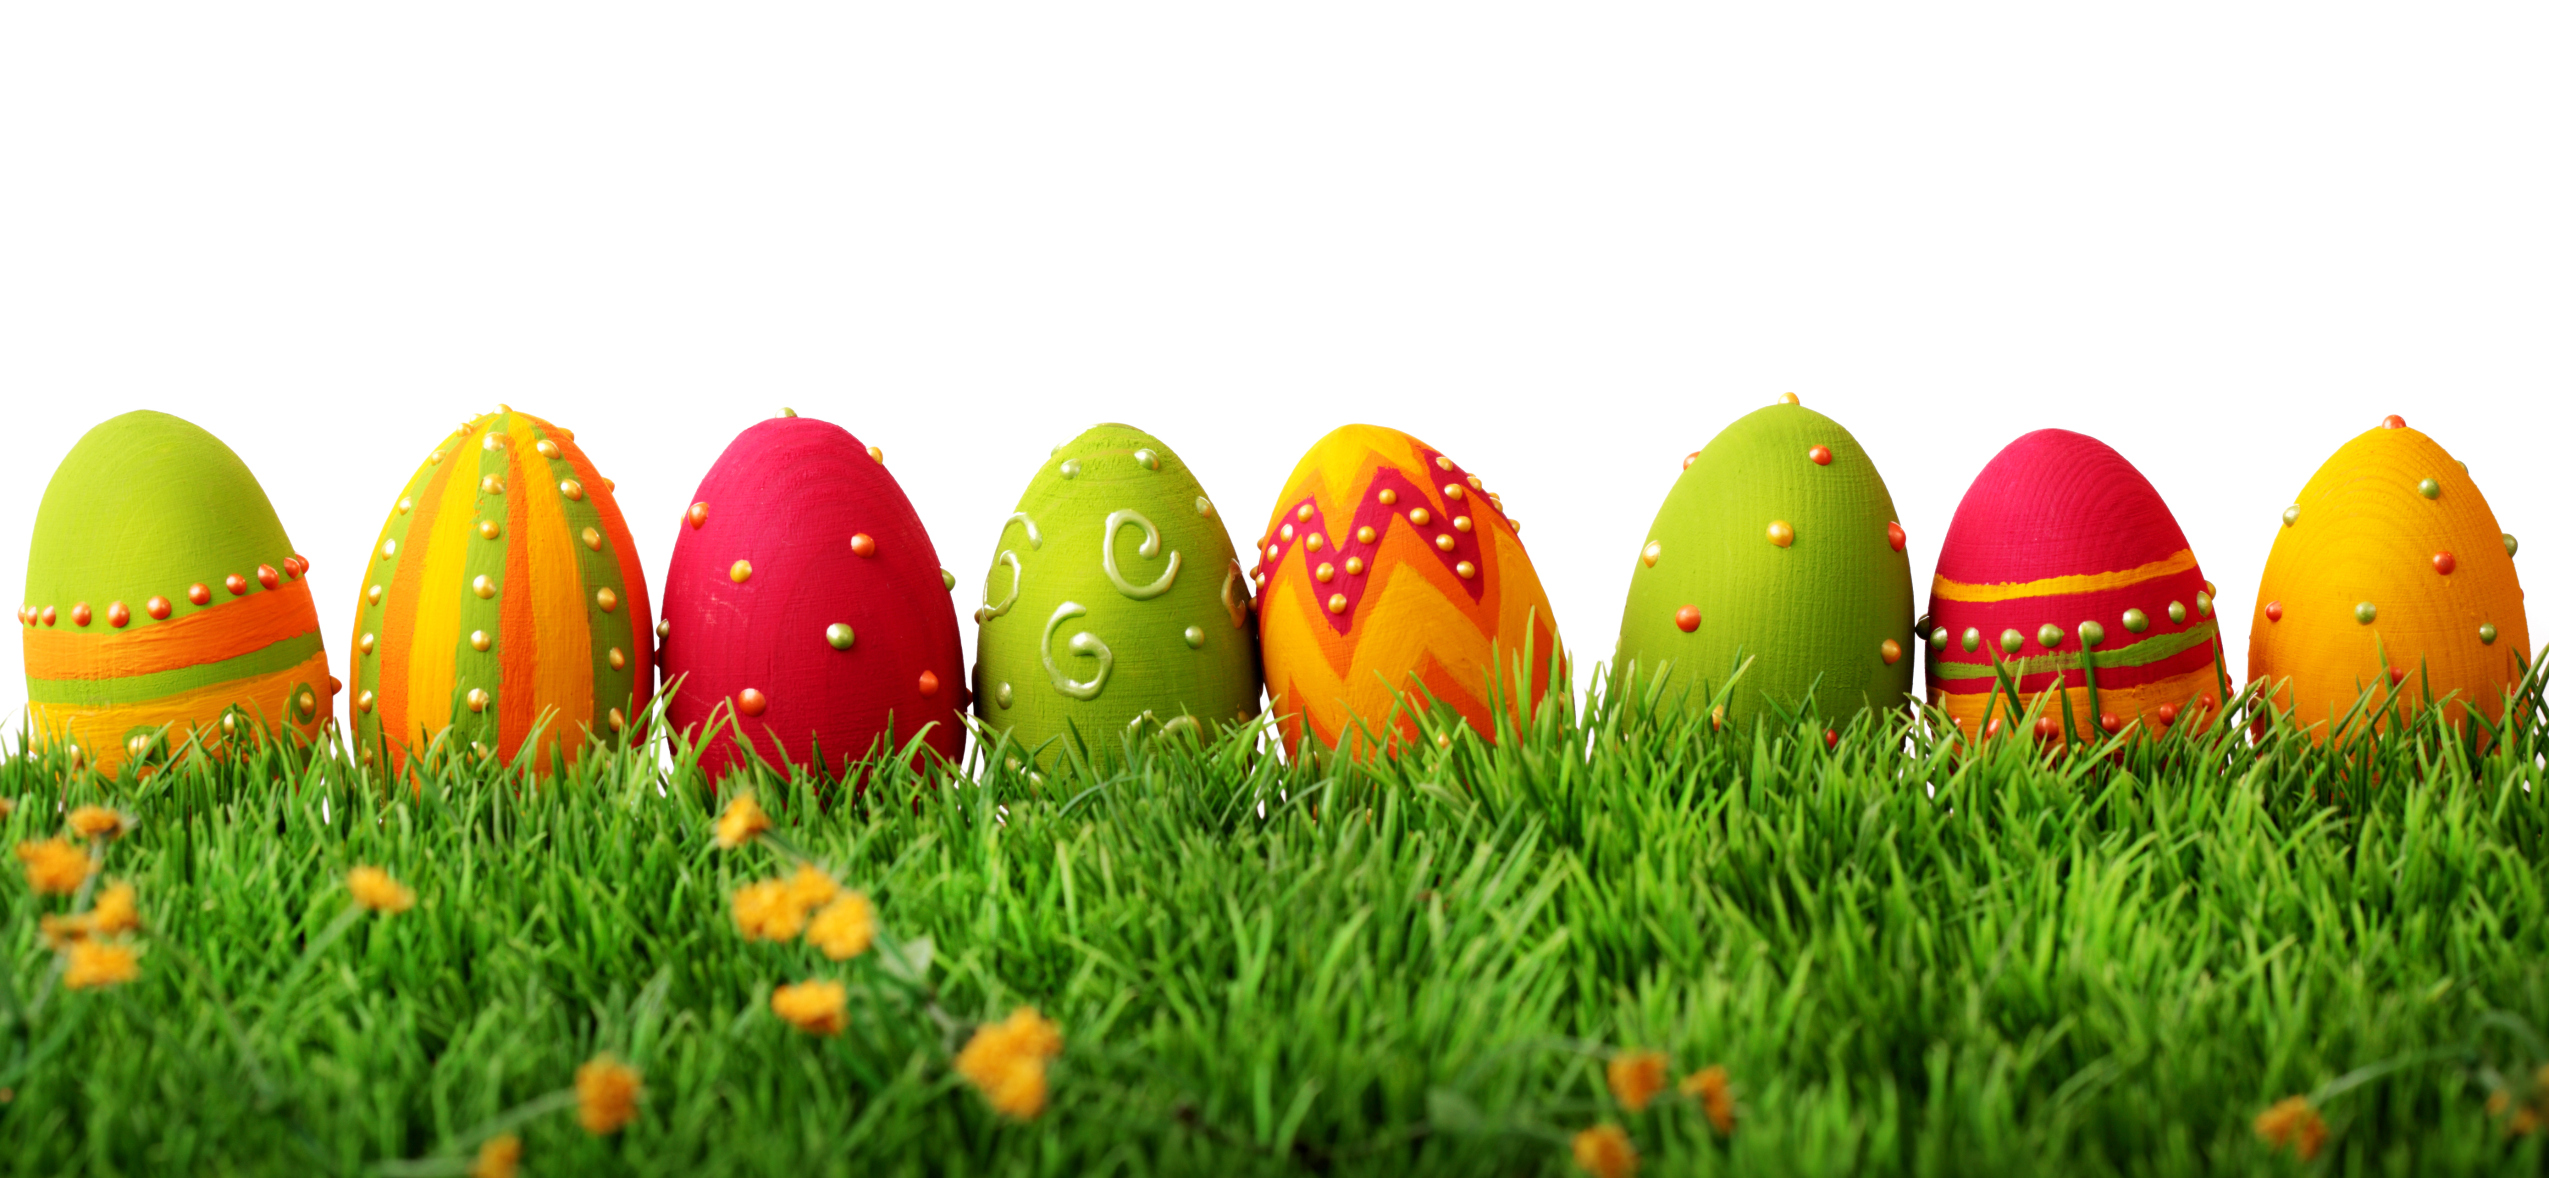 Easter Egg Hunt Images, Wallpapers, Easter Poems and Easter Bunny Pics HD 2017 Free